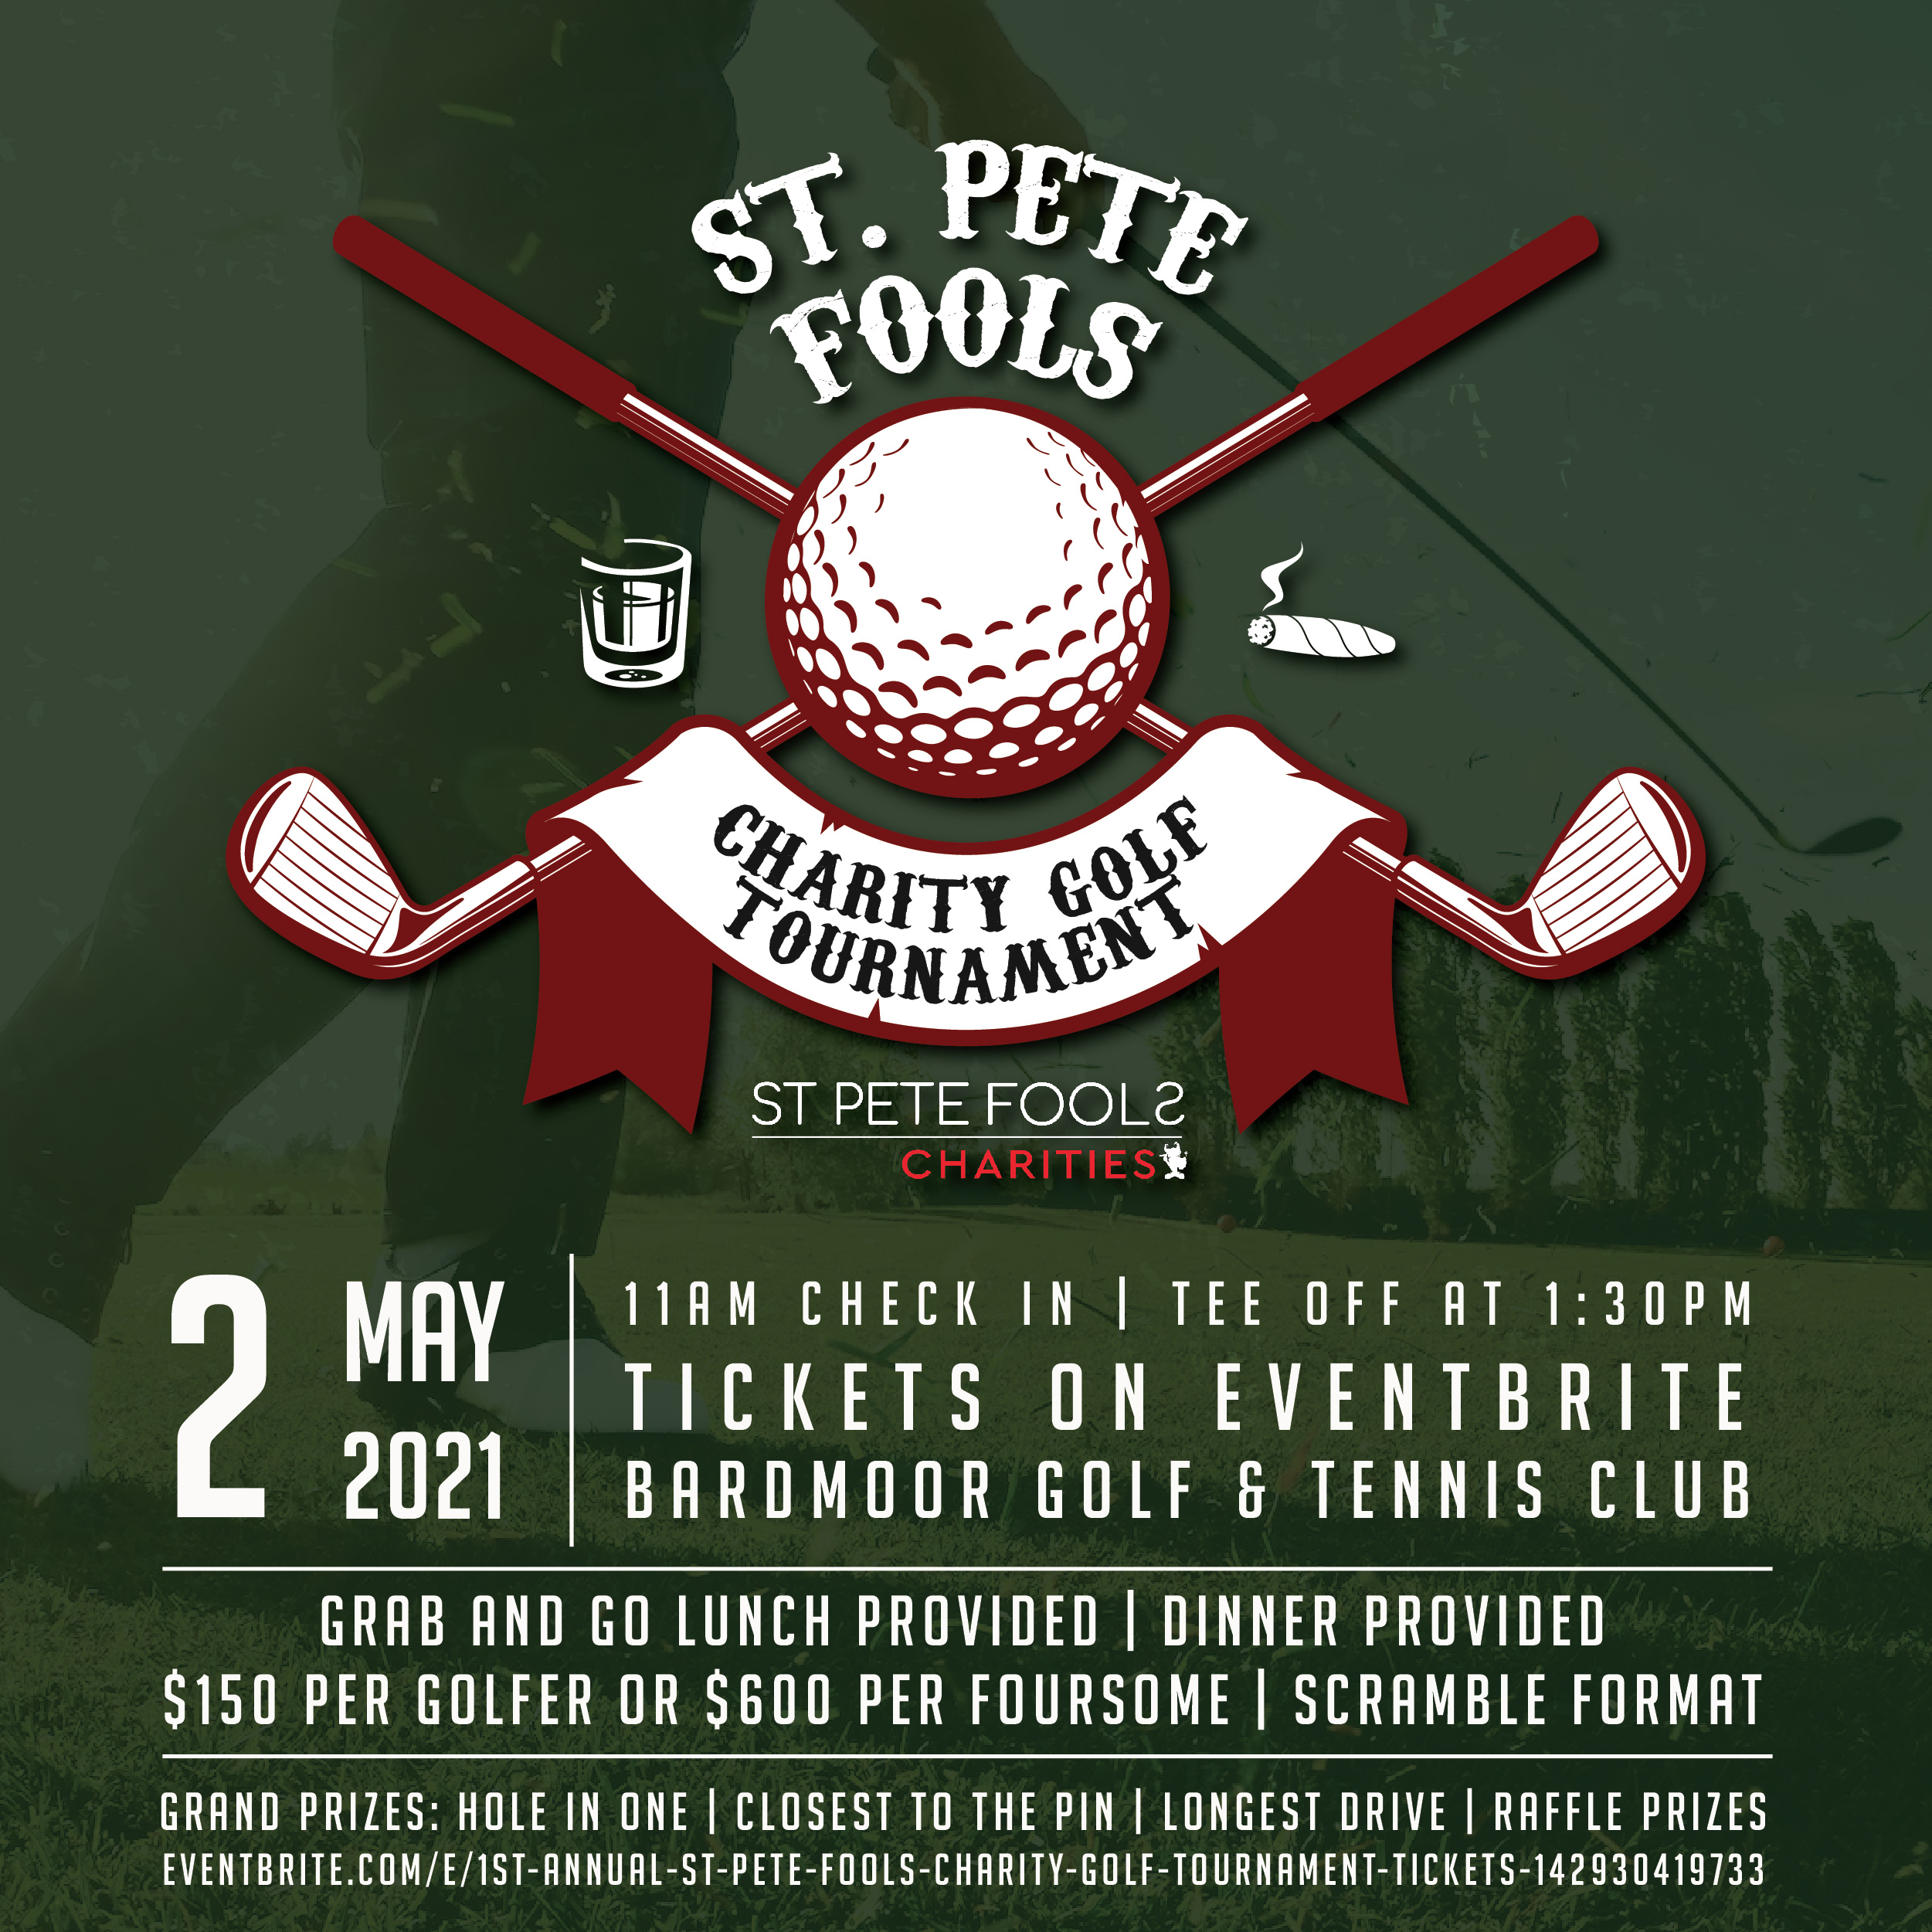 St. Pete Fools Charity Aspires to Raise $20,000 at First Annual Golf Tournament